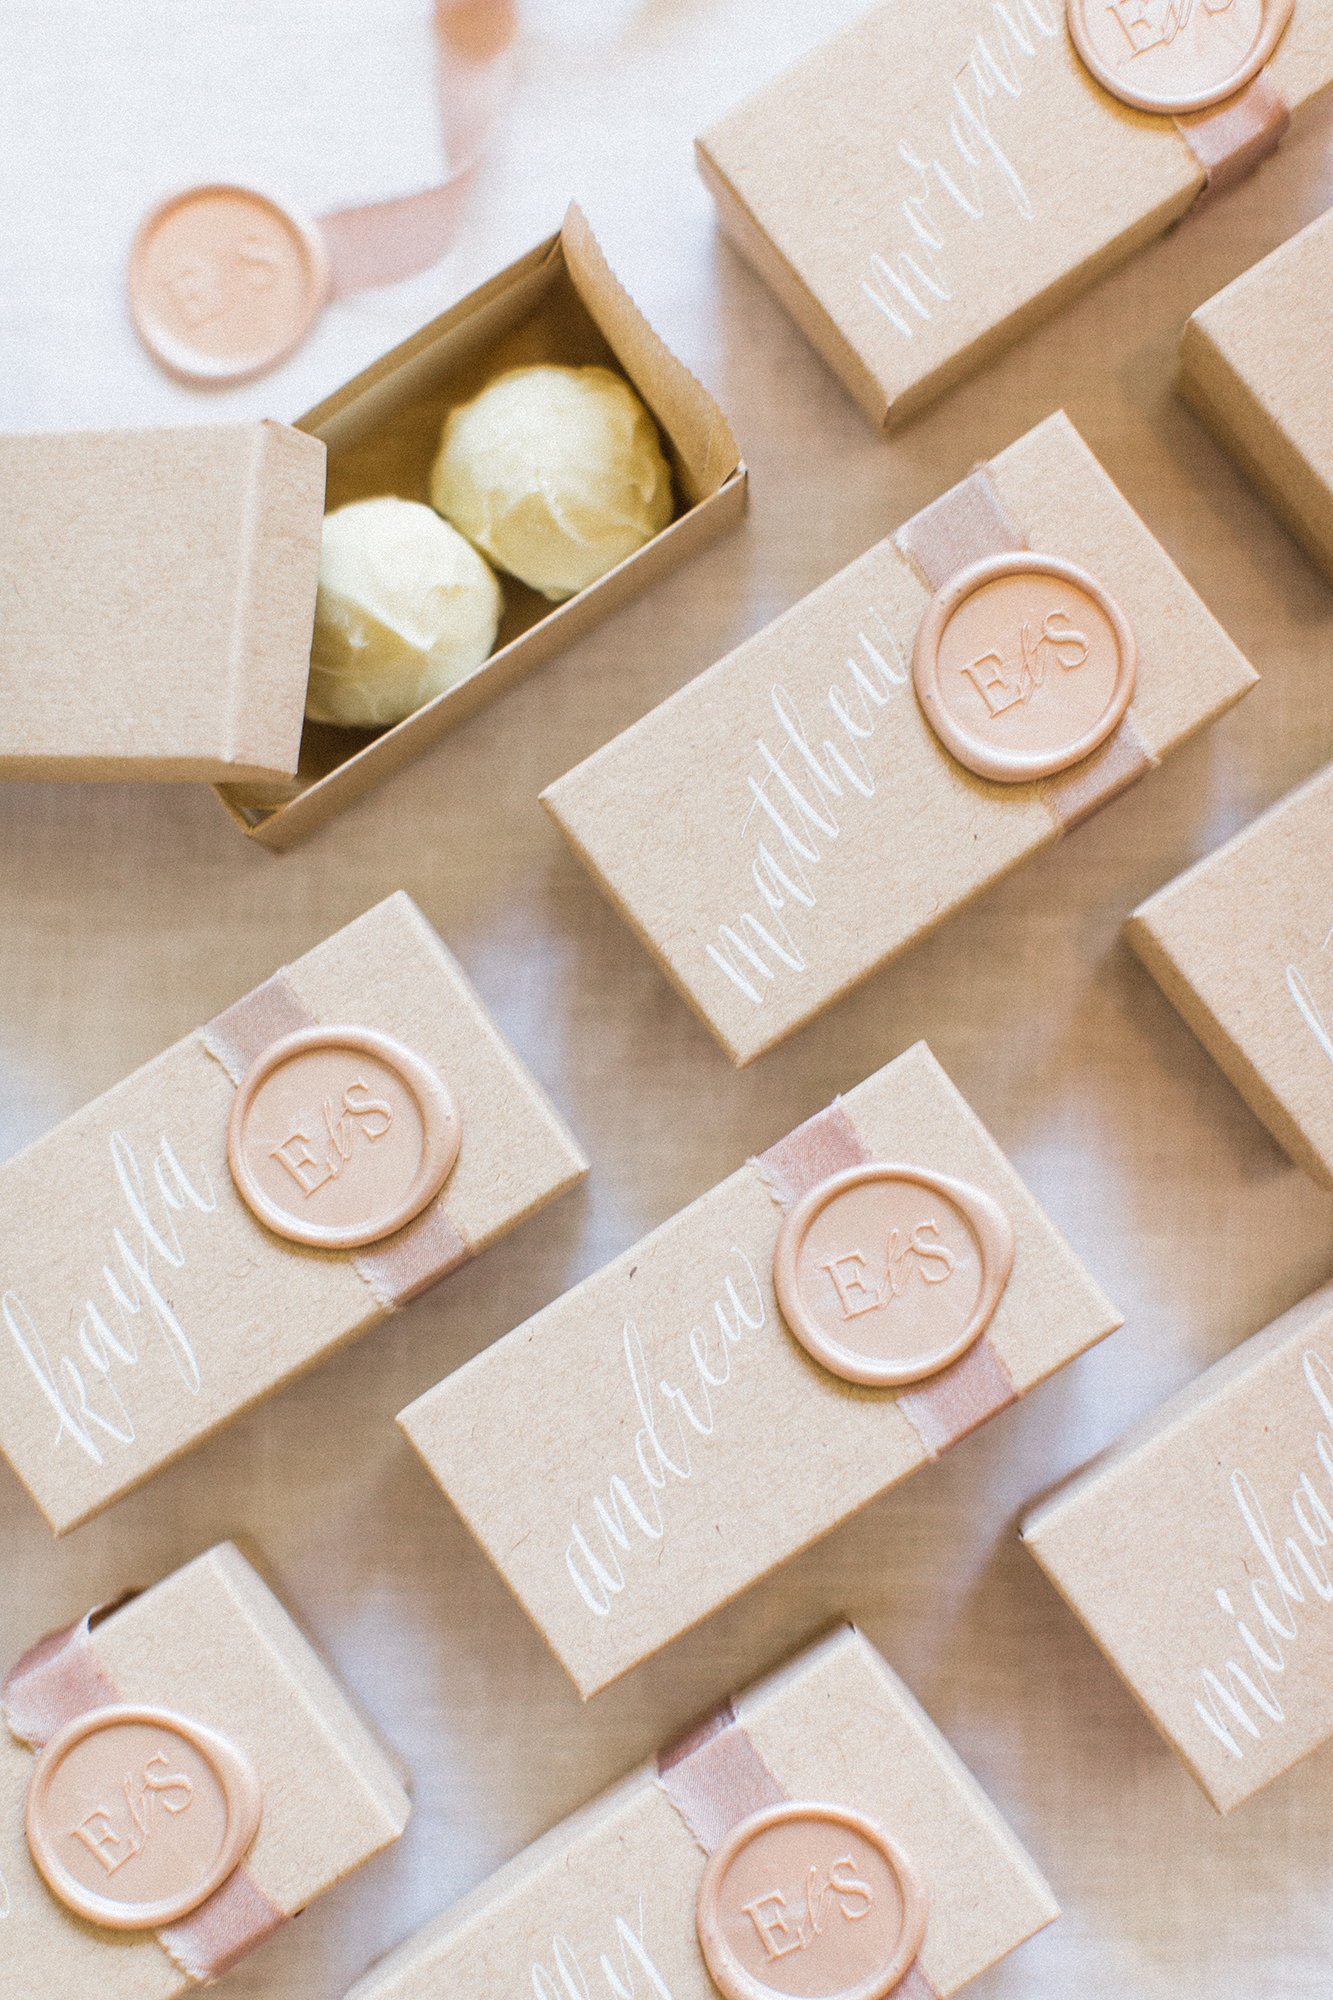 Truffles are always a popular wedding favor, which is why presentation can go a long way in helping your big day stand out from the rest. How elegant are these personalized boxes decorated with caligraphy by Miranda Writes, simple blush ribbons from FrouFrou Chic, and tan, monogramed wax stamps by Wax Seals? Guests surely held on to the packaging long after the truffles were gone.